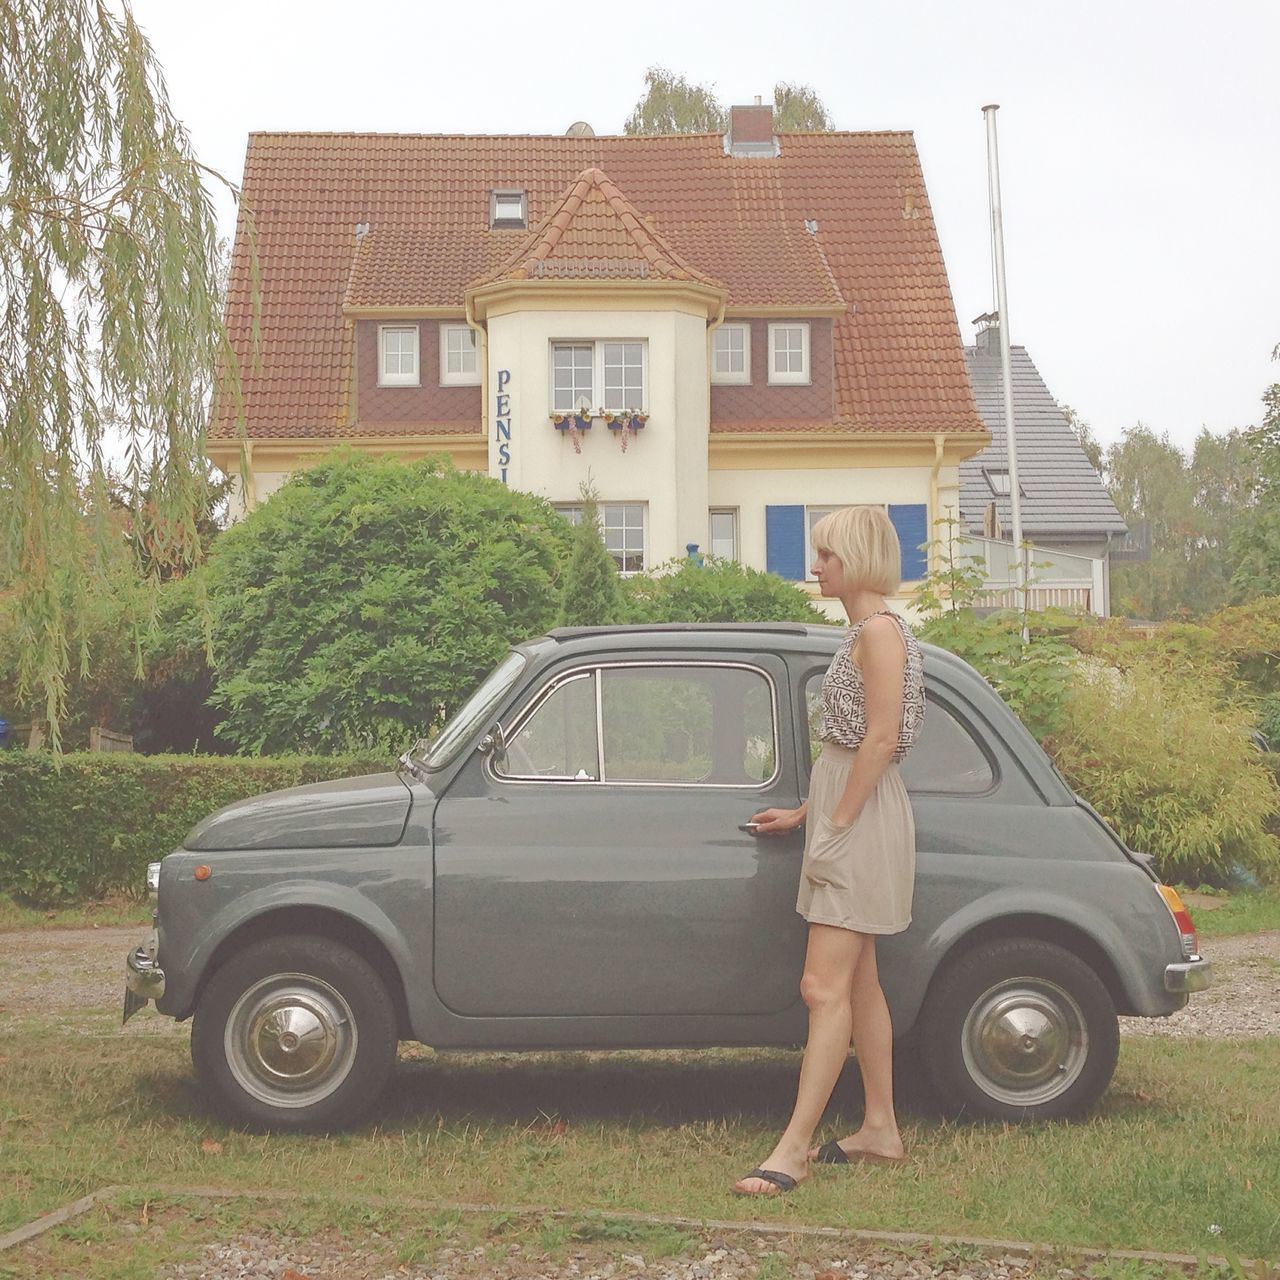 Architecture Blond Hair Building Exterior Car Child Childhood Fiat Fiat 500 Full Length Girl Girl Car House Girl Power Grass Grey Car House Italian Car Mature Adult Mature Women One Person Outdoors People Side View Small Car Standing Woman